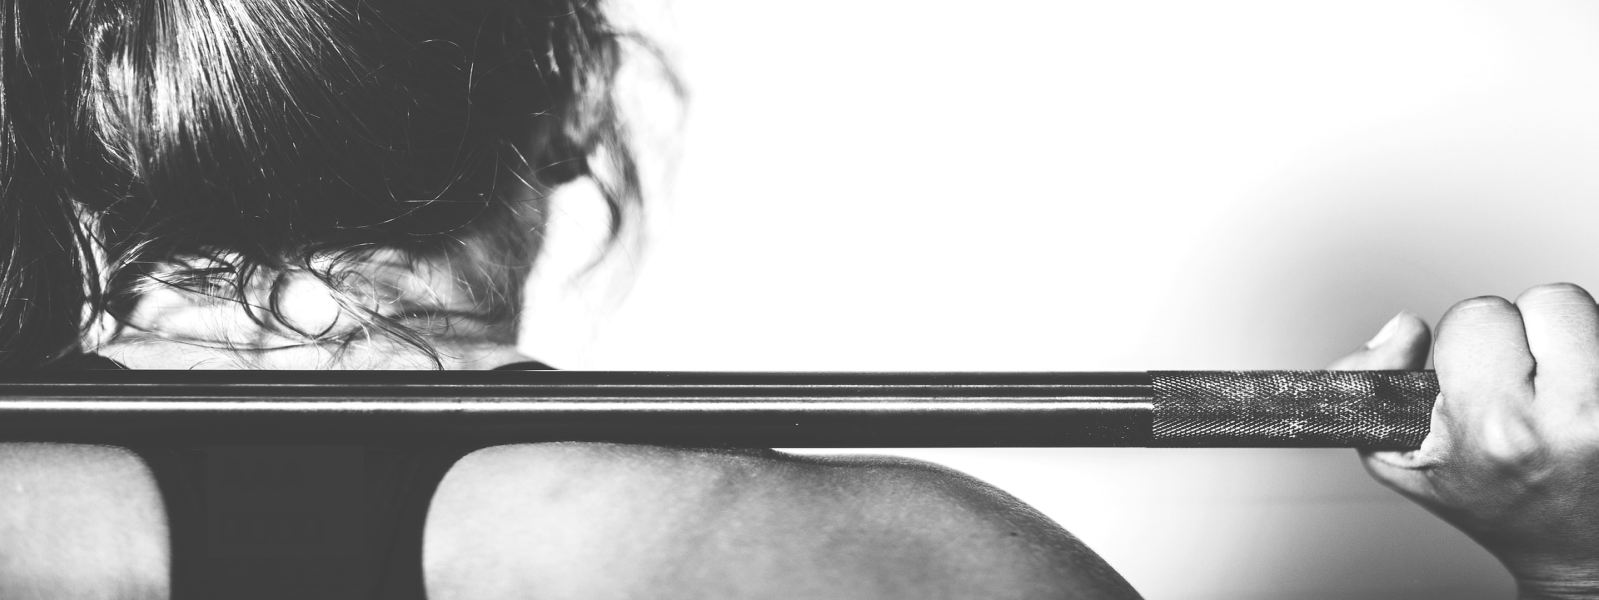 Why is lifting good for women?